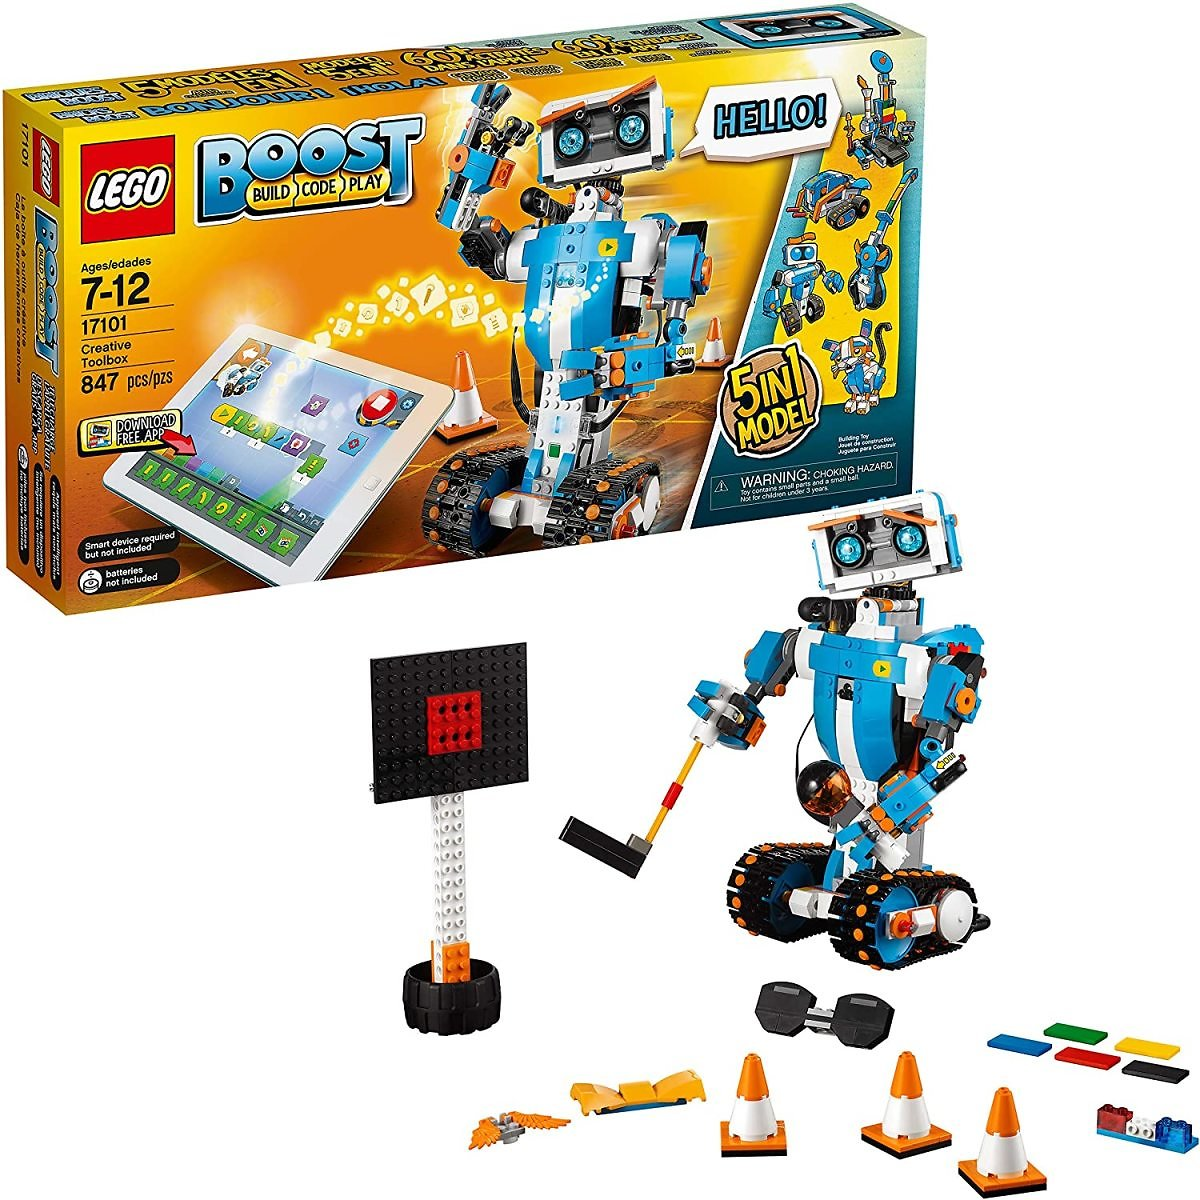 LEGO Boost Creative Toolbox 17101 Fun Robot Building Set and Educational Coding Kit for Kids $148.99